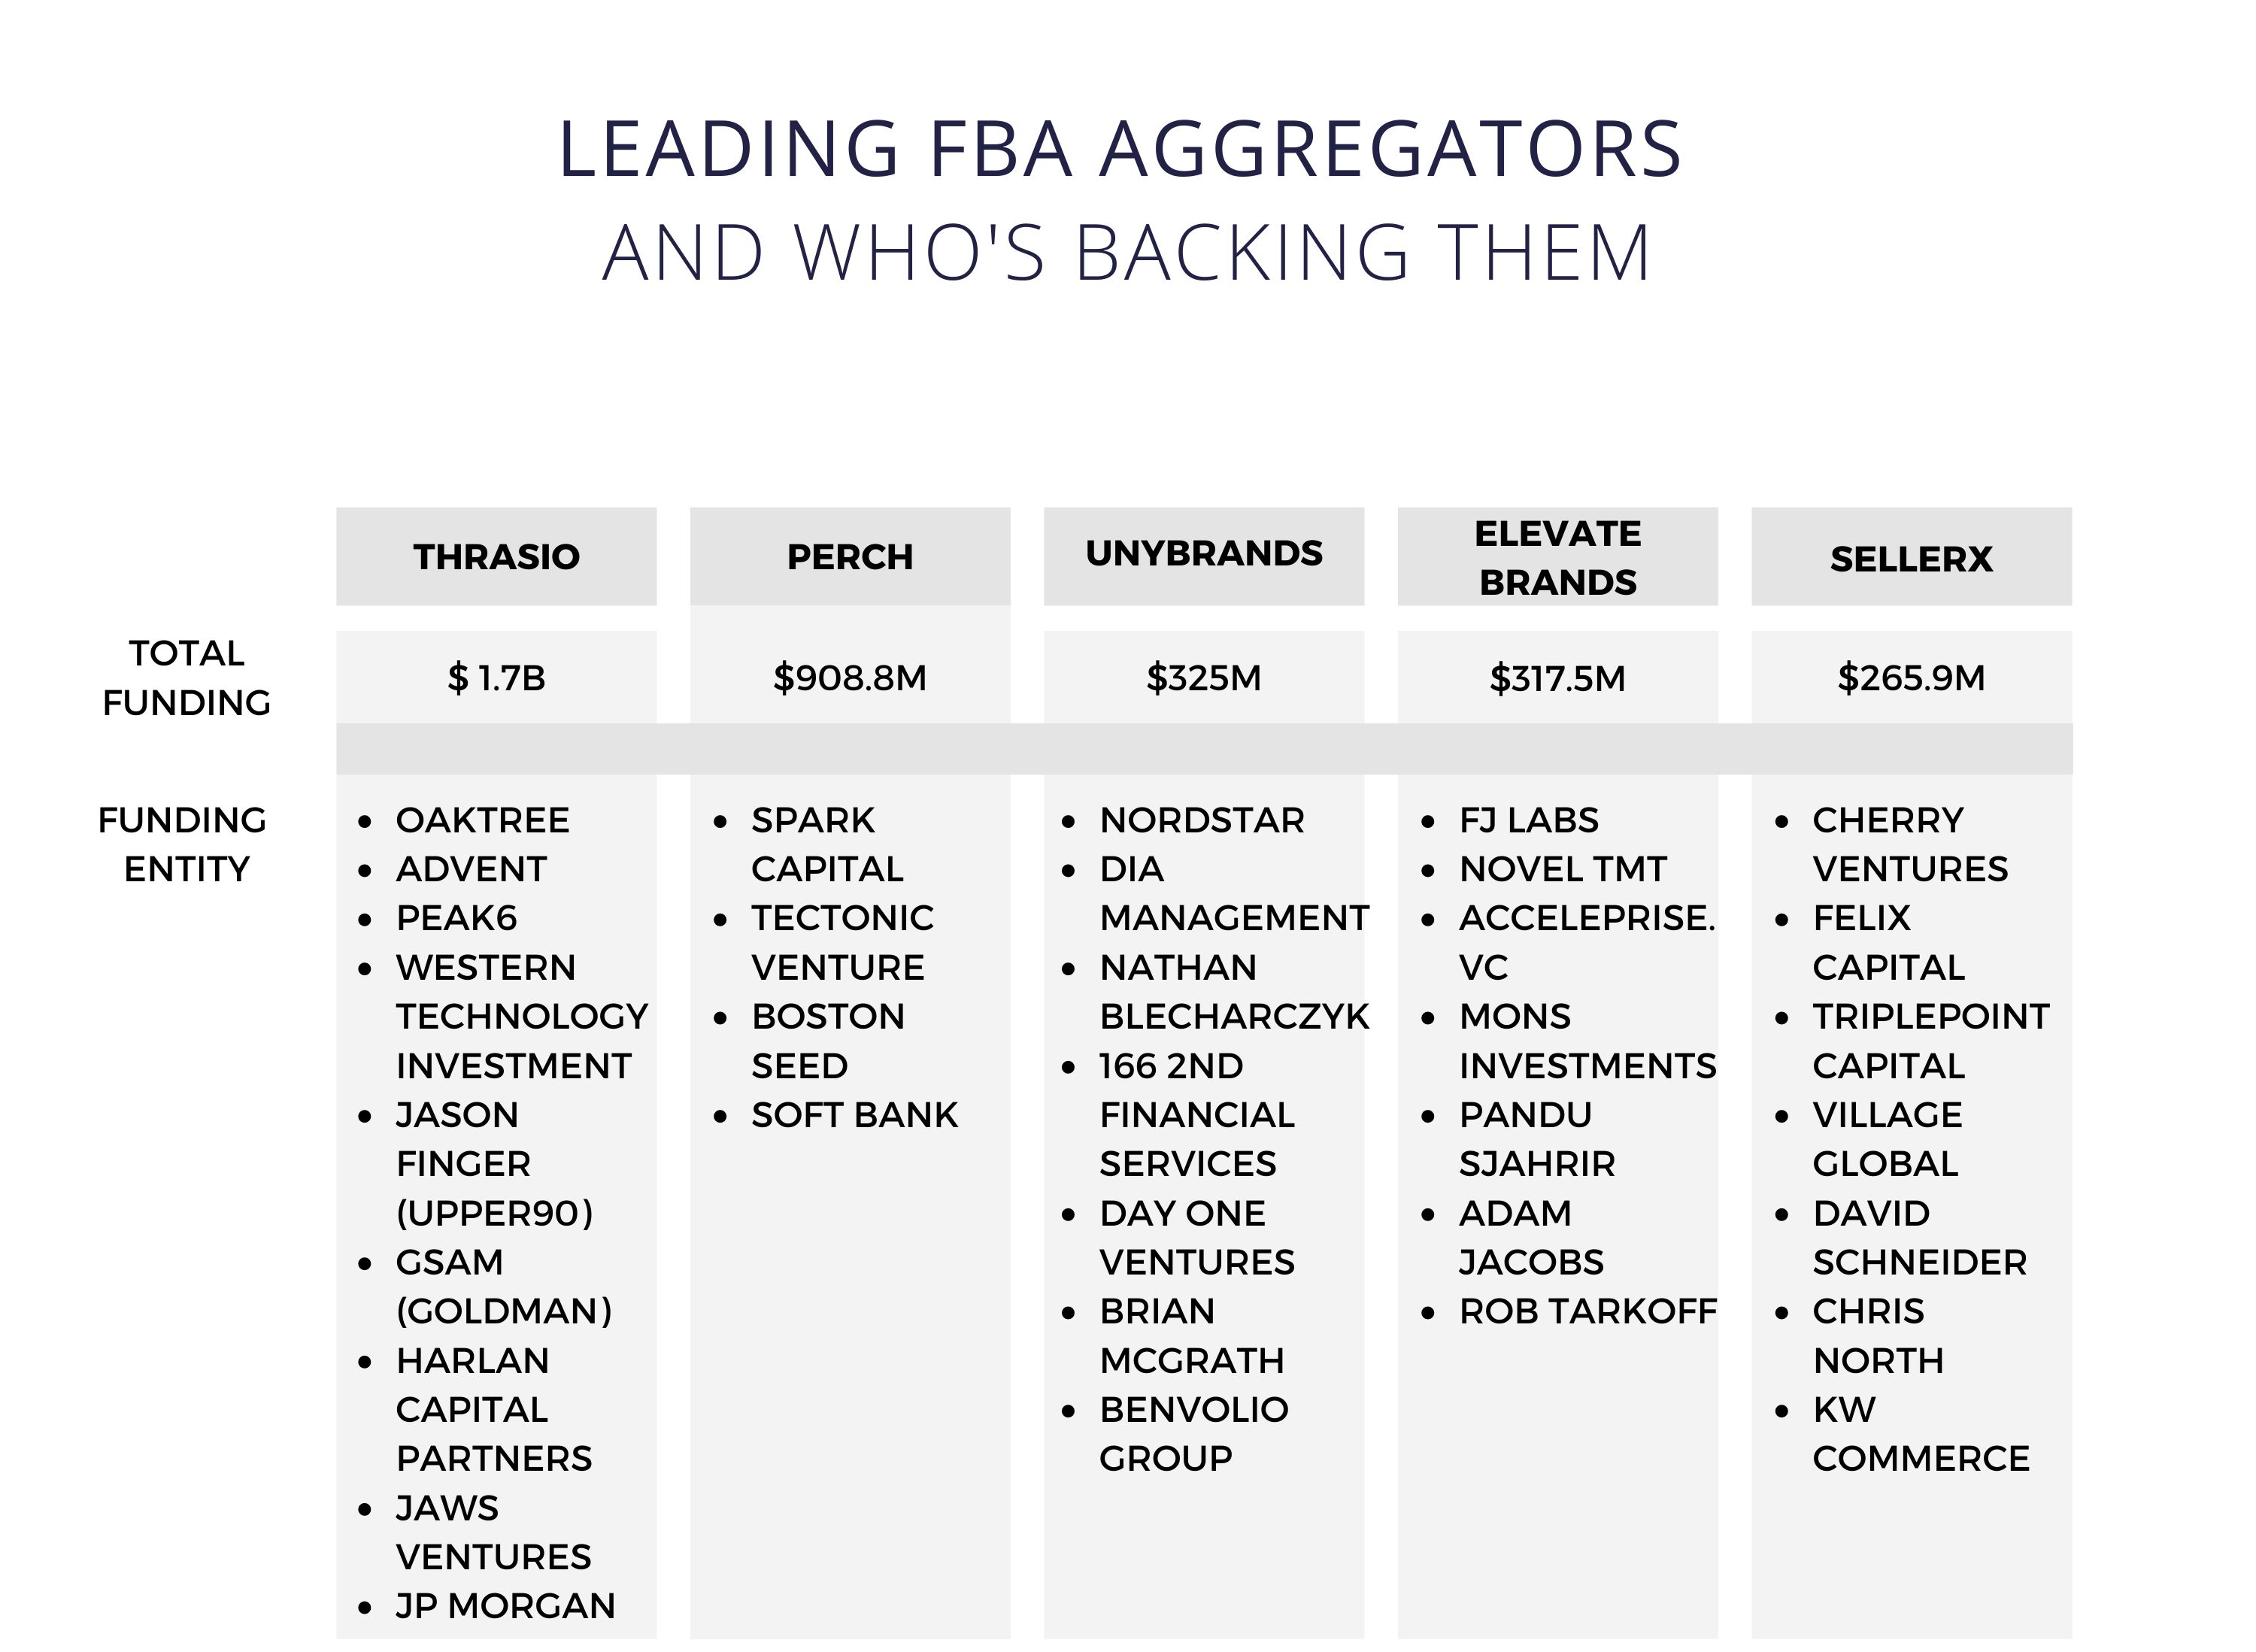 FBA Aggregators and the companies funding them